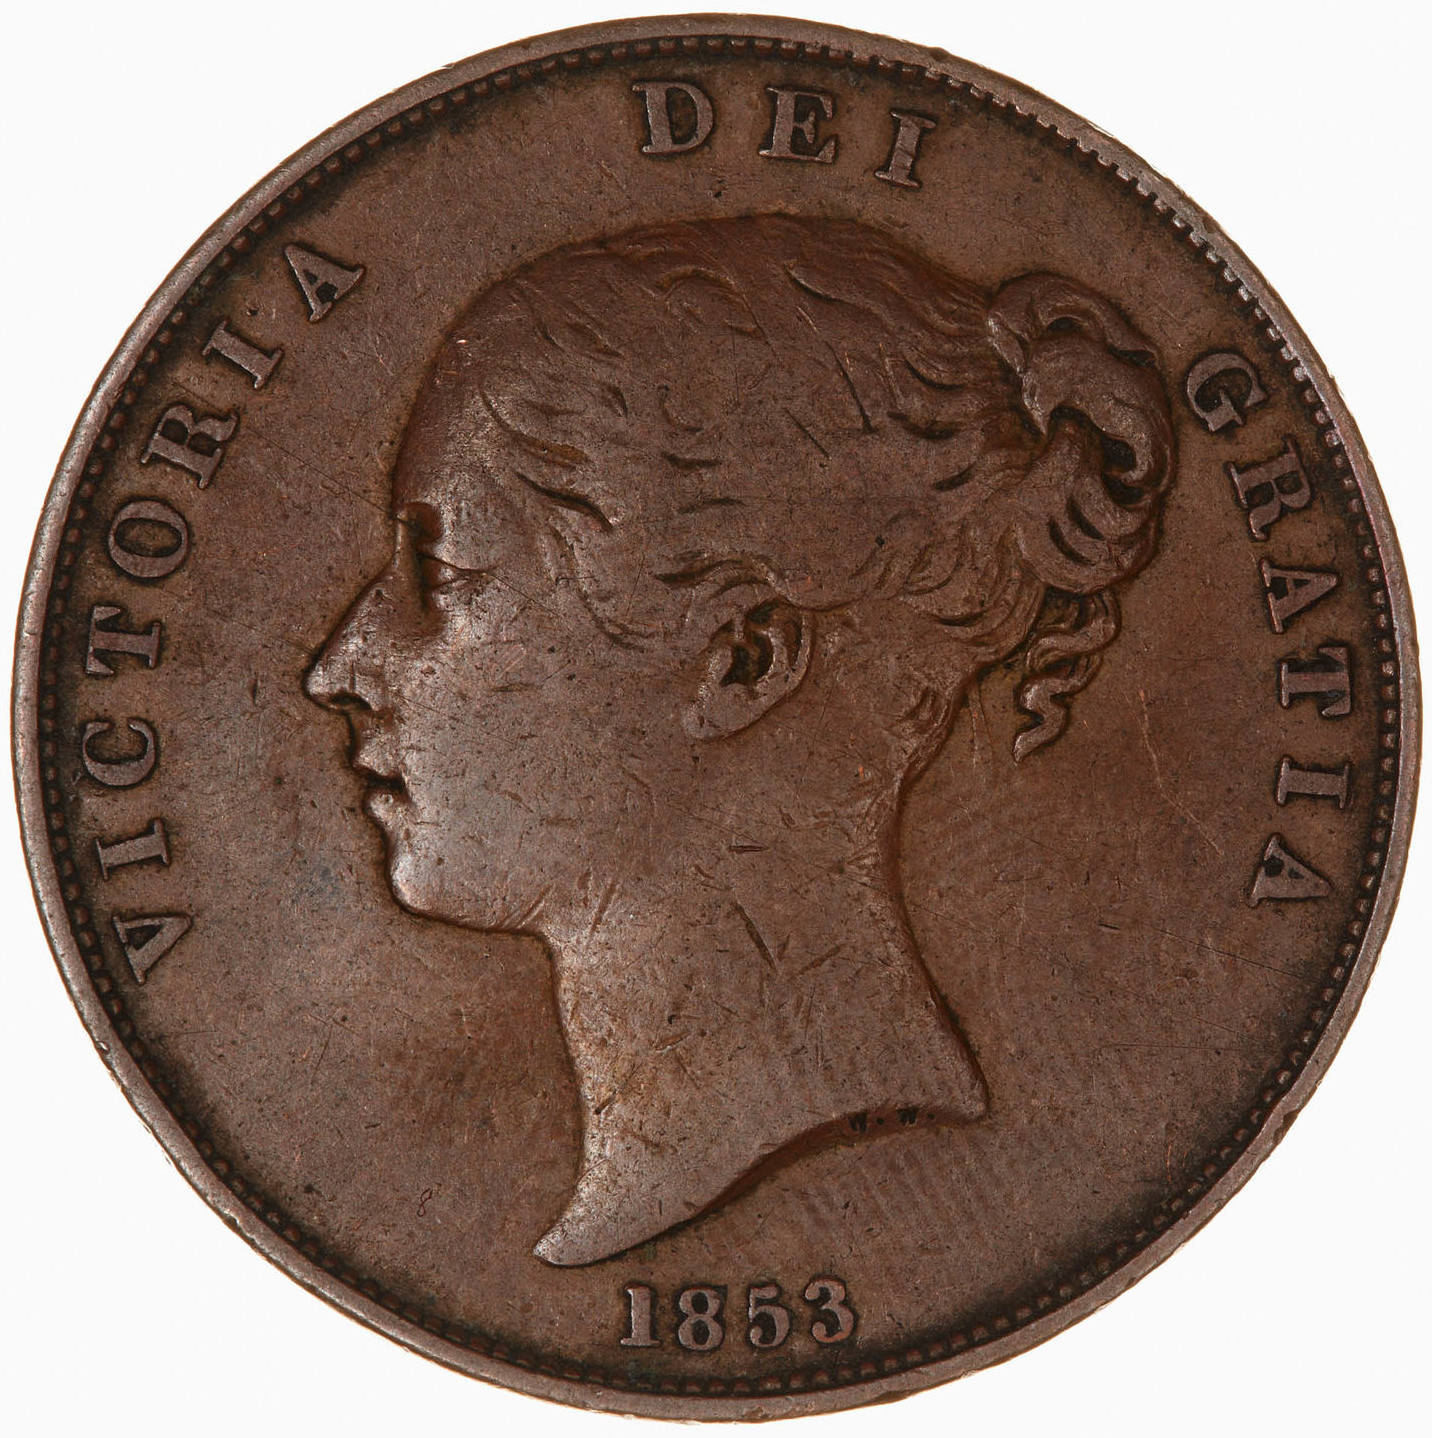 Penny 1853: Photo Coin - Penny, Queen Victoria, Great Britain, 1853